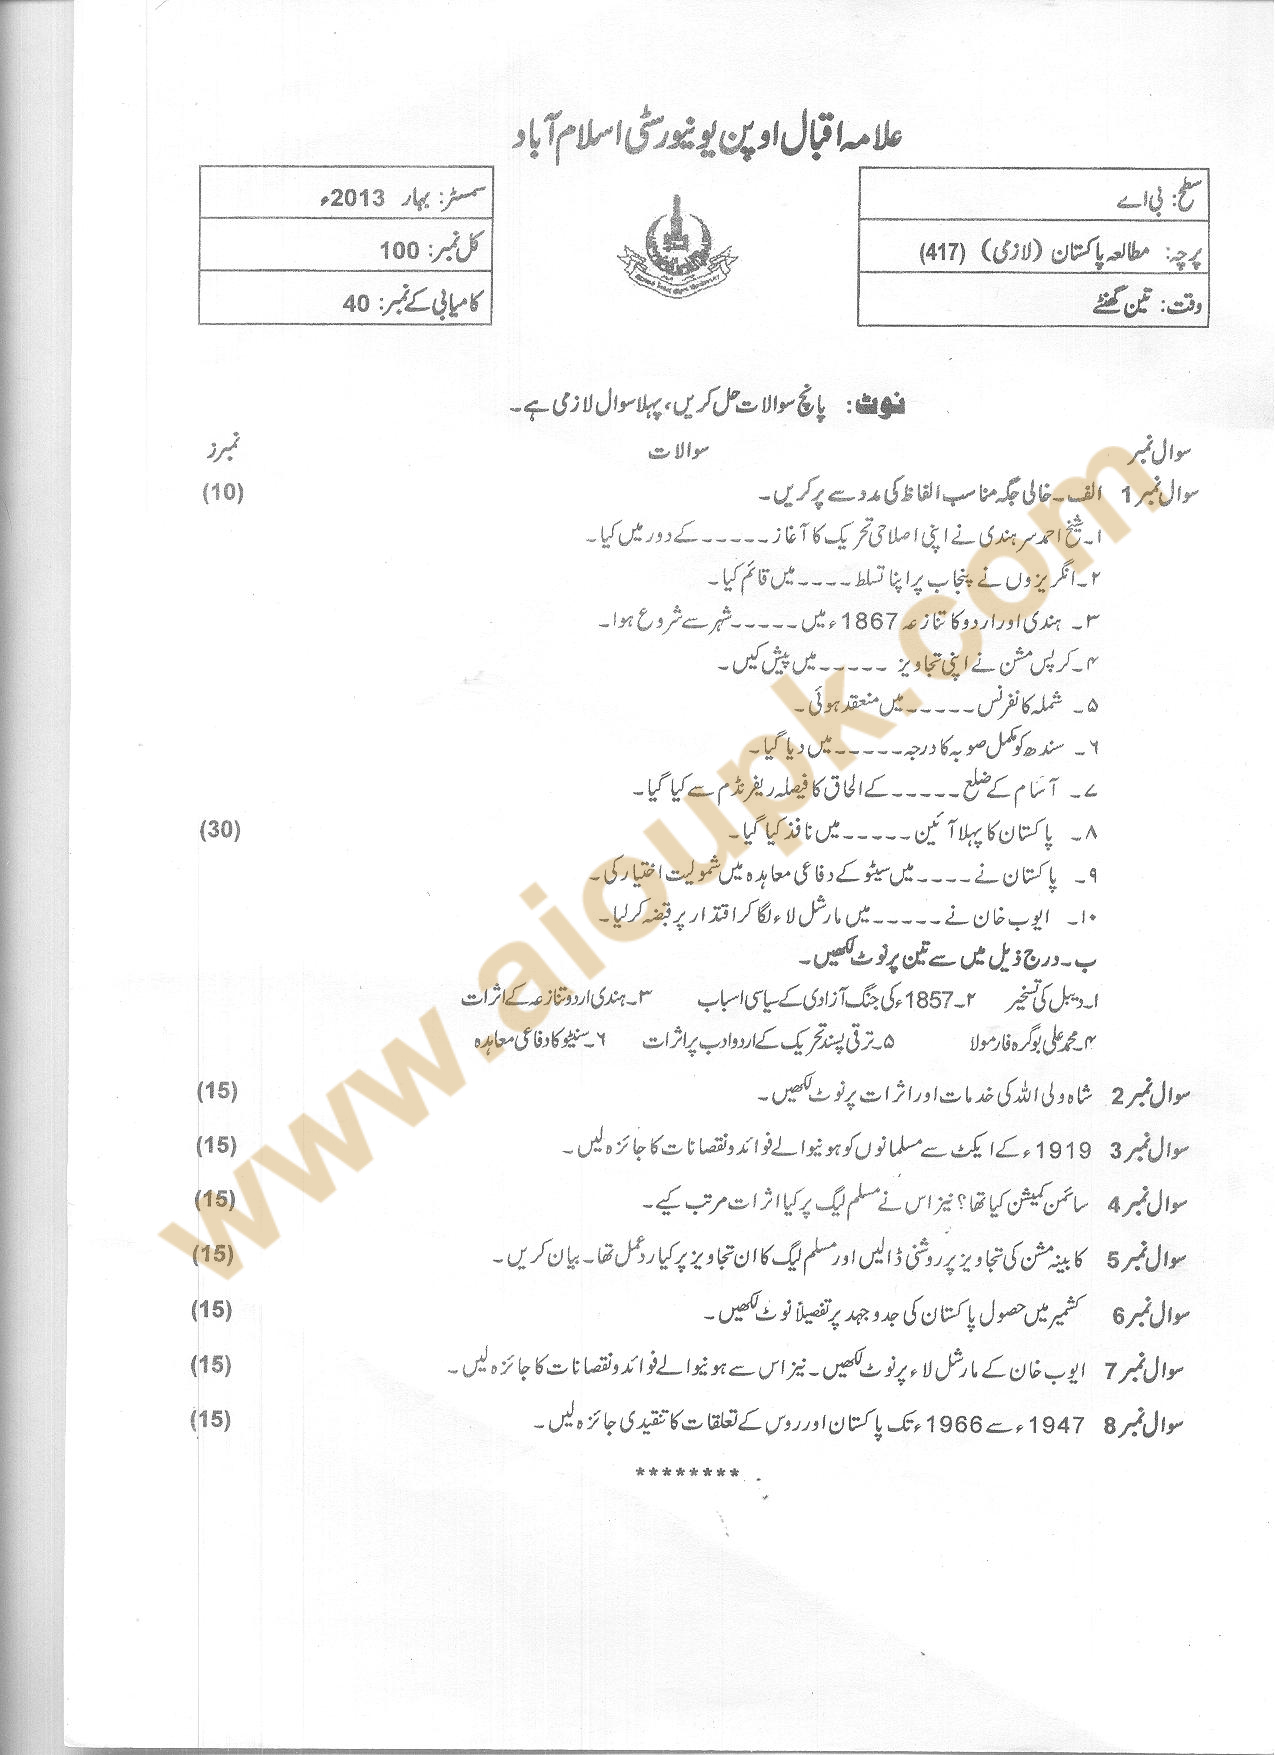 aiou instructed to do 417 occupied 2015